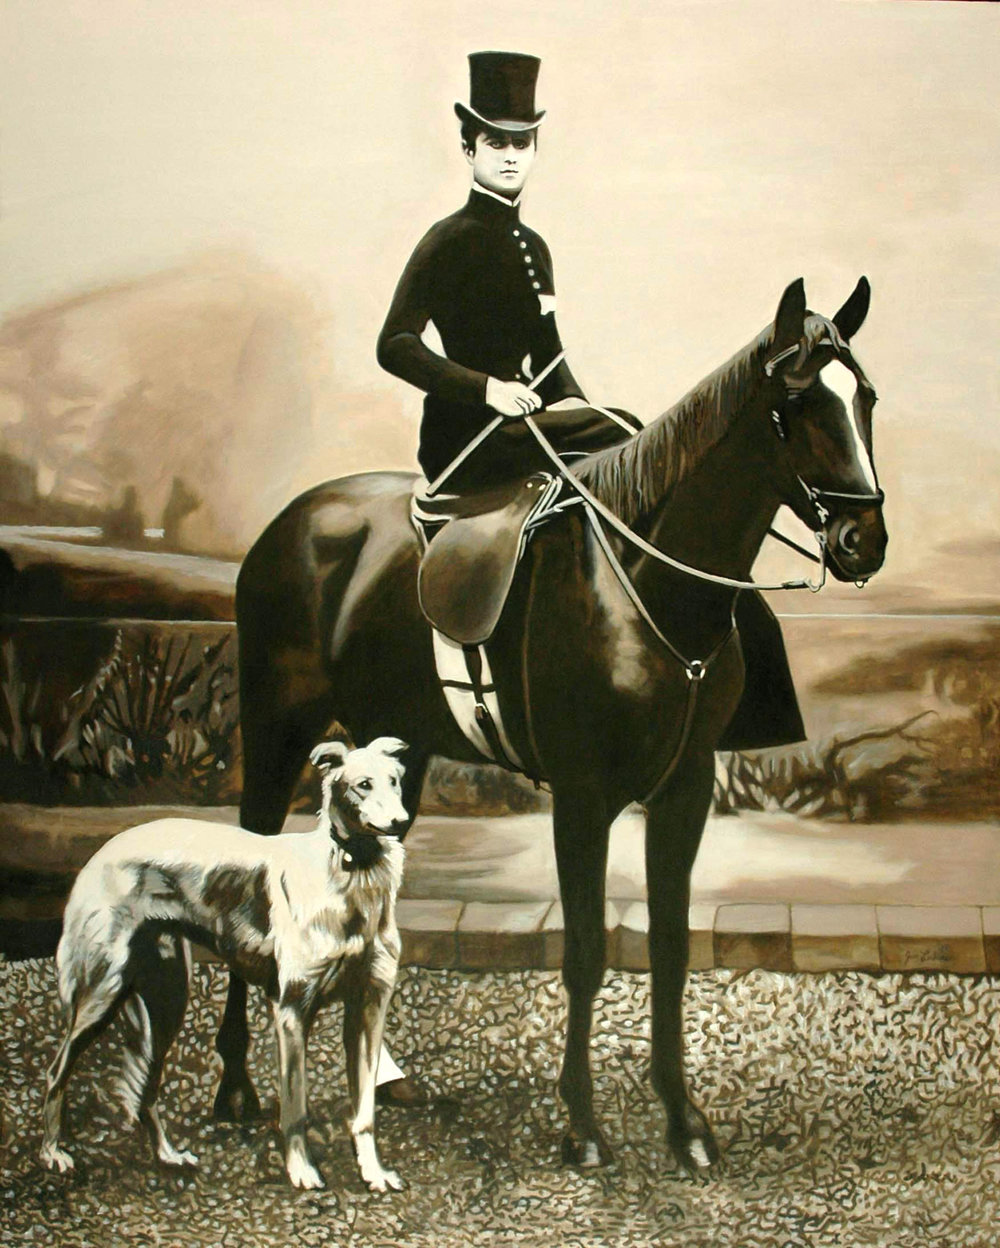 Her Horse & Dog